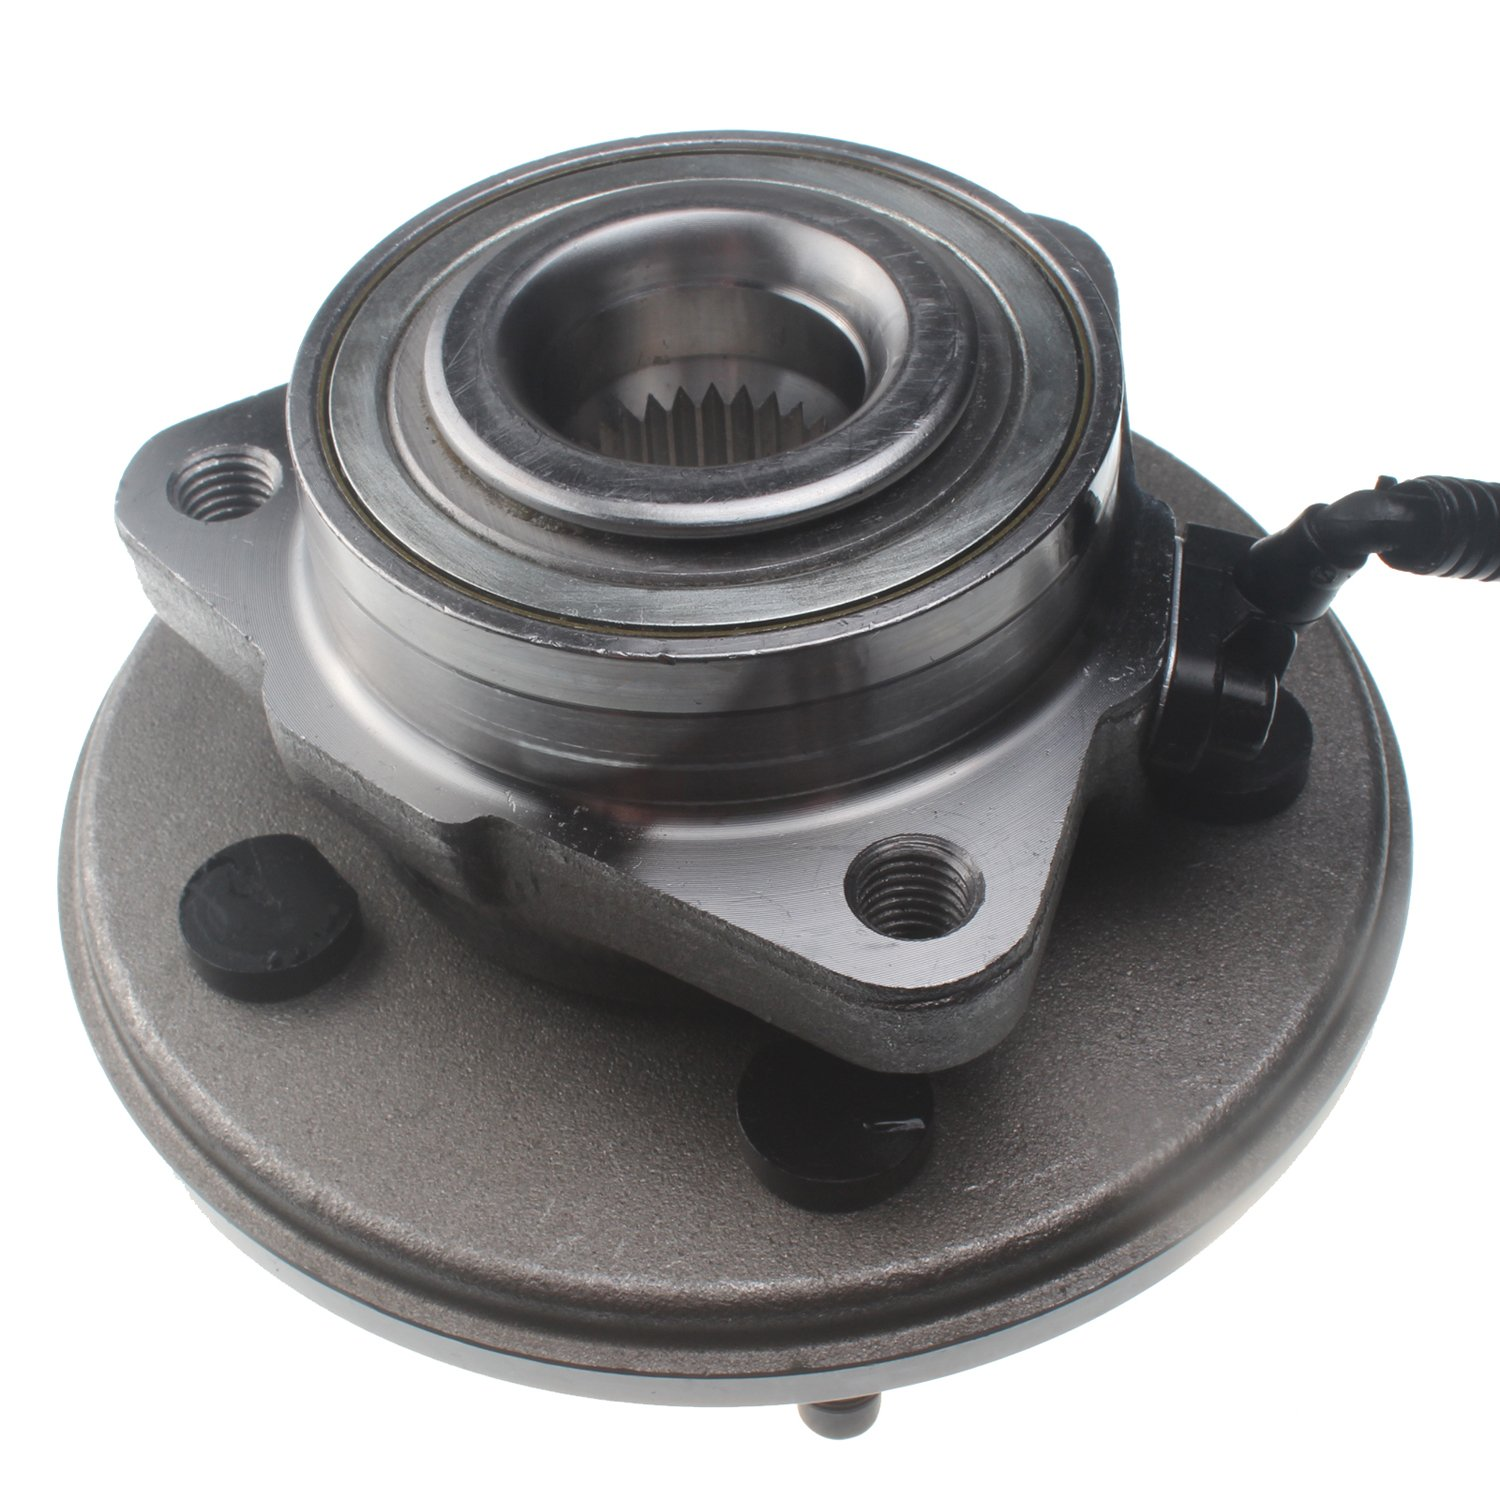 Mover Parts 515050 Front Wheel Hub and Bearing Assembly Fit Ford Explorer,Lincoln Aviator,Mercury Mountaineer 02-05 W/ABS